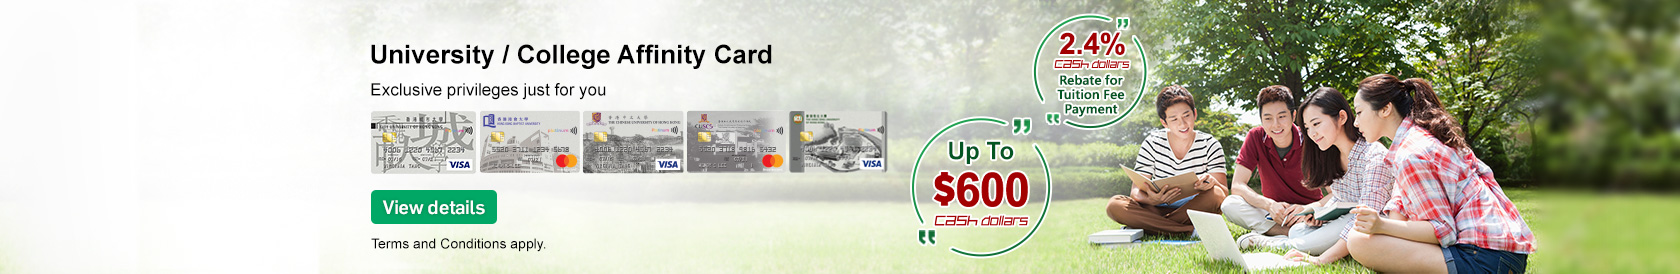 Successfully apply for University / College Affinity Credit Card to enjoy Welcome Offer of up to 600 Cash Dollars